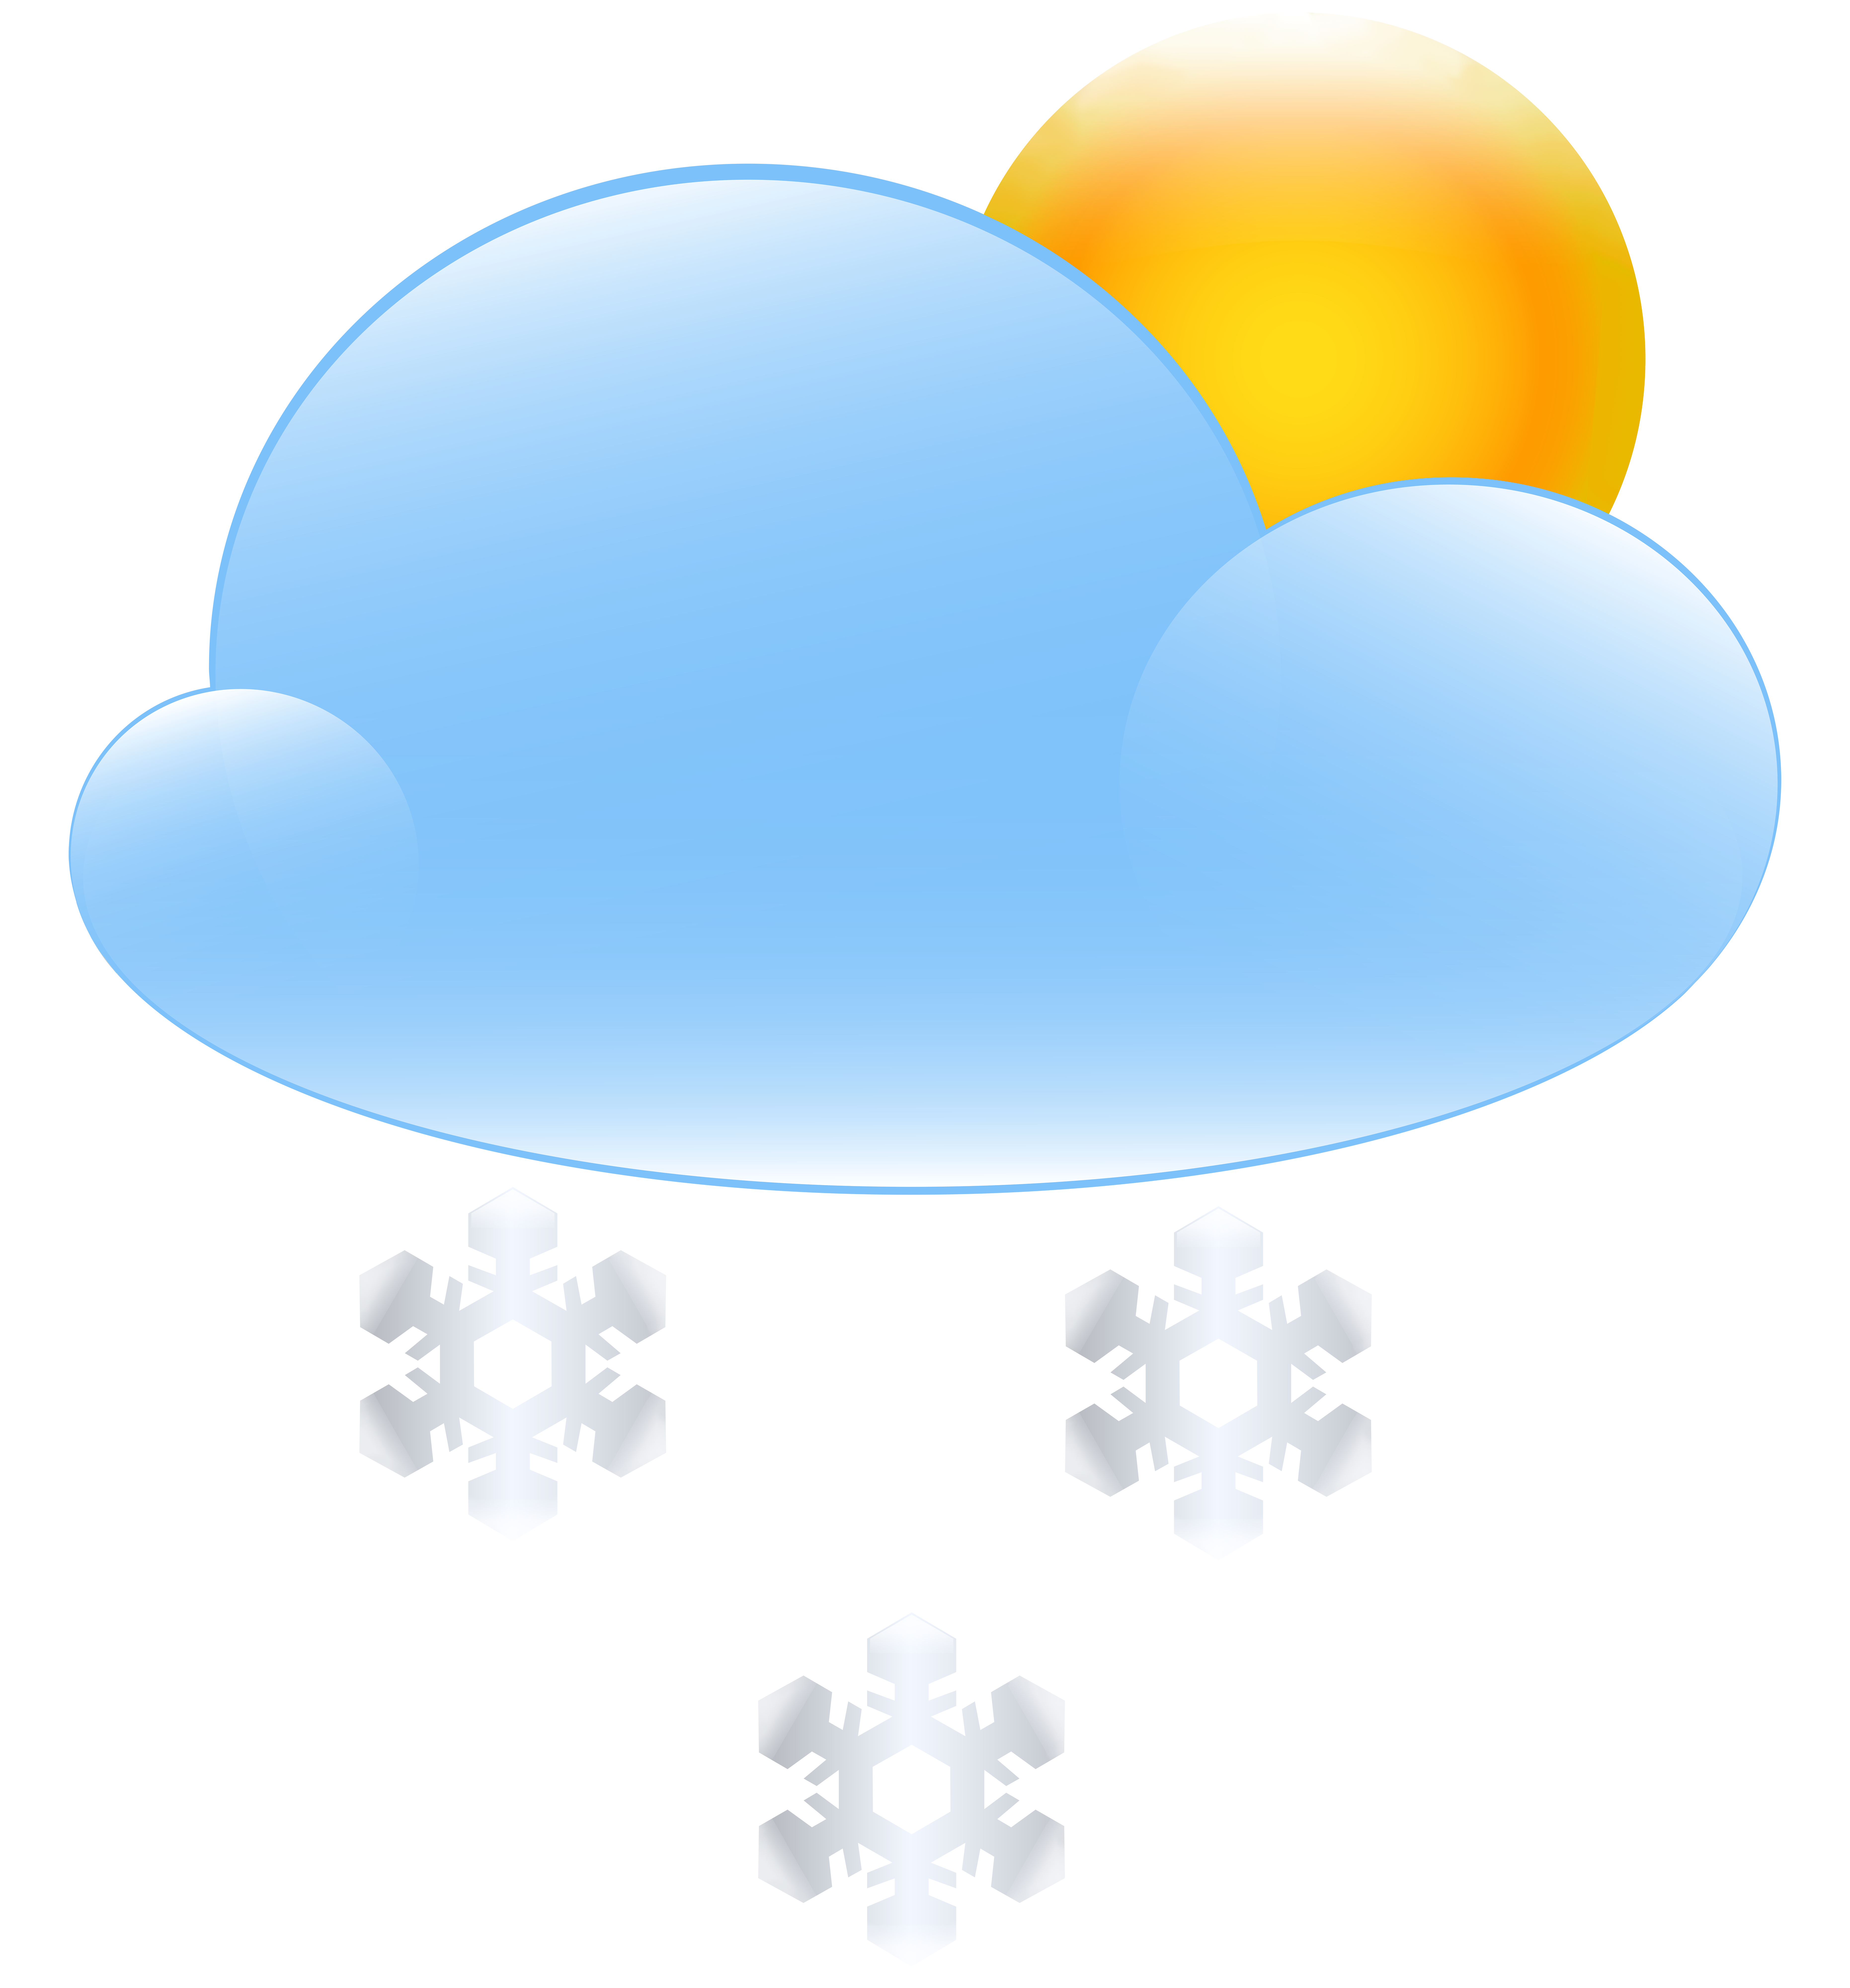 Sun and snow icon. Cloud clipart weather